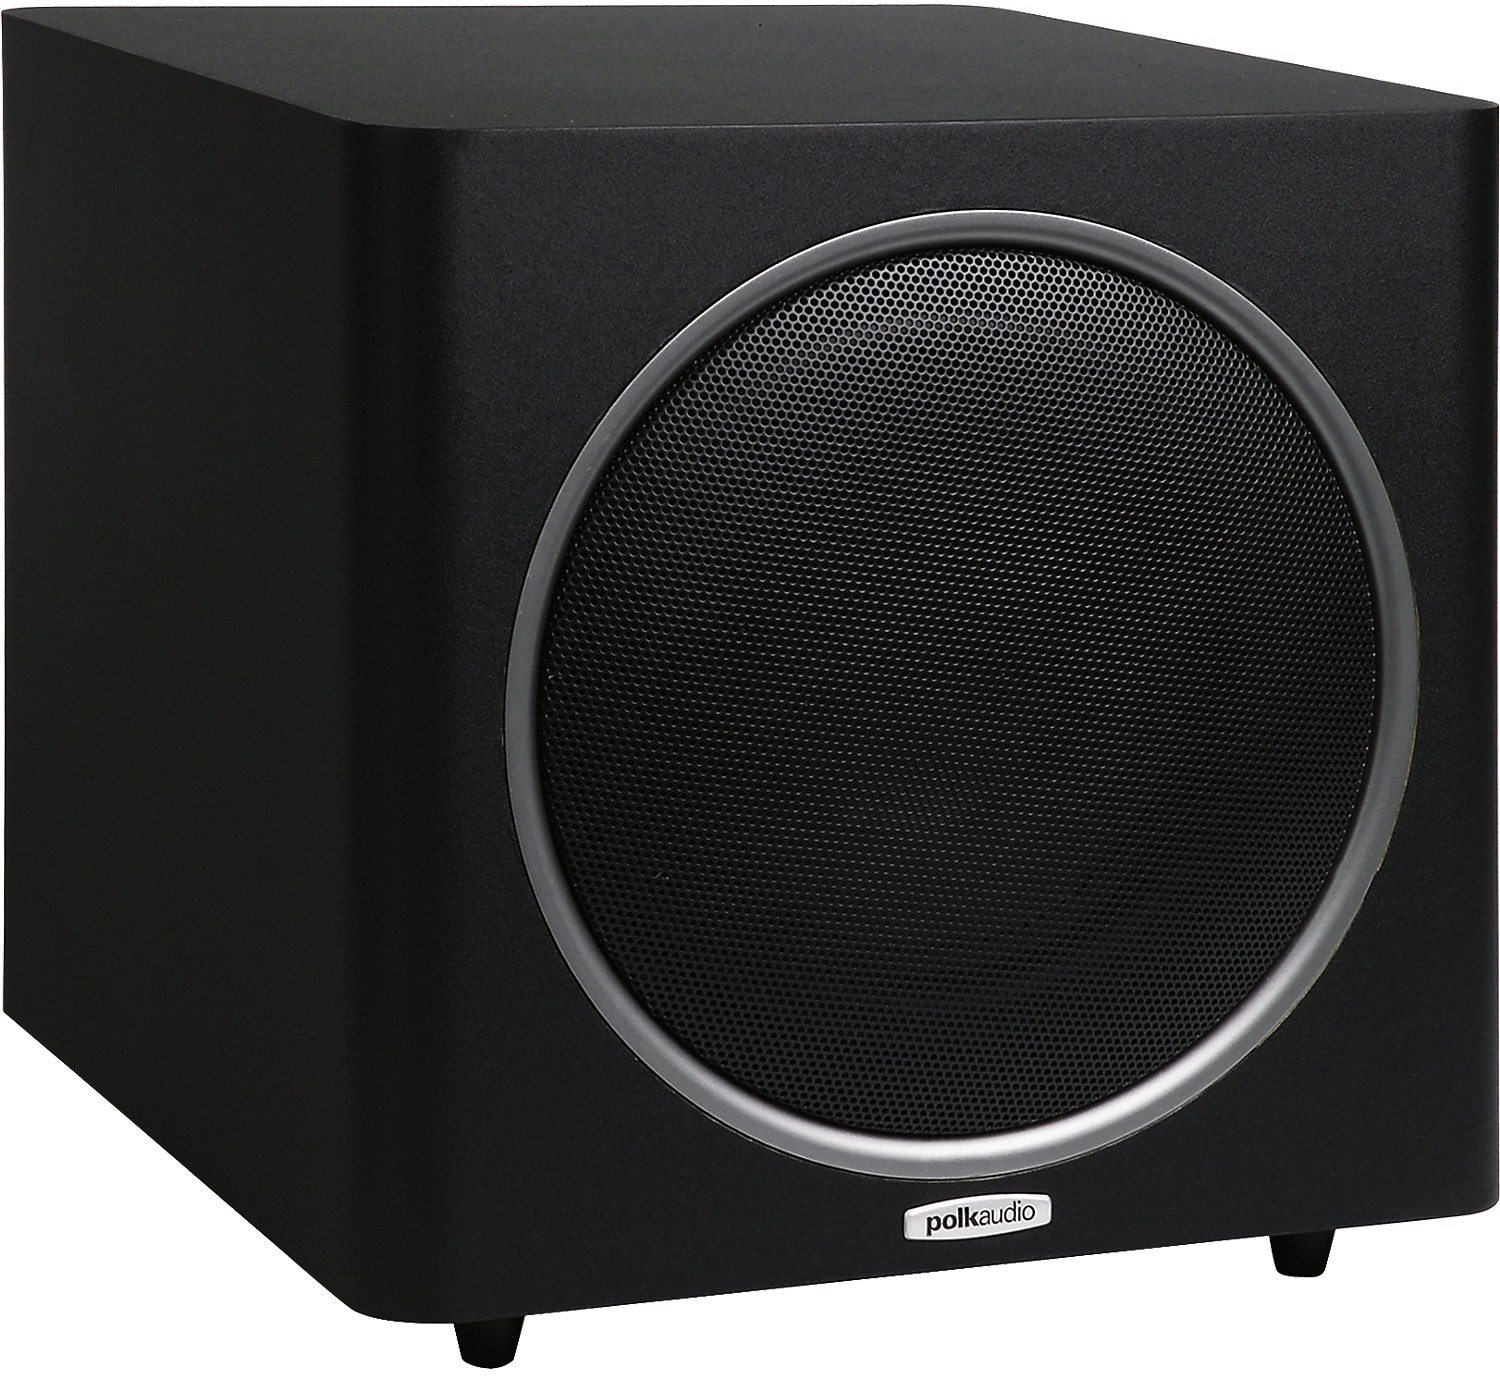 Polk Audio 200 Watt Powered Subwoofer